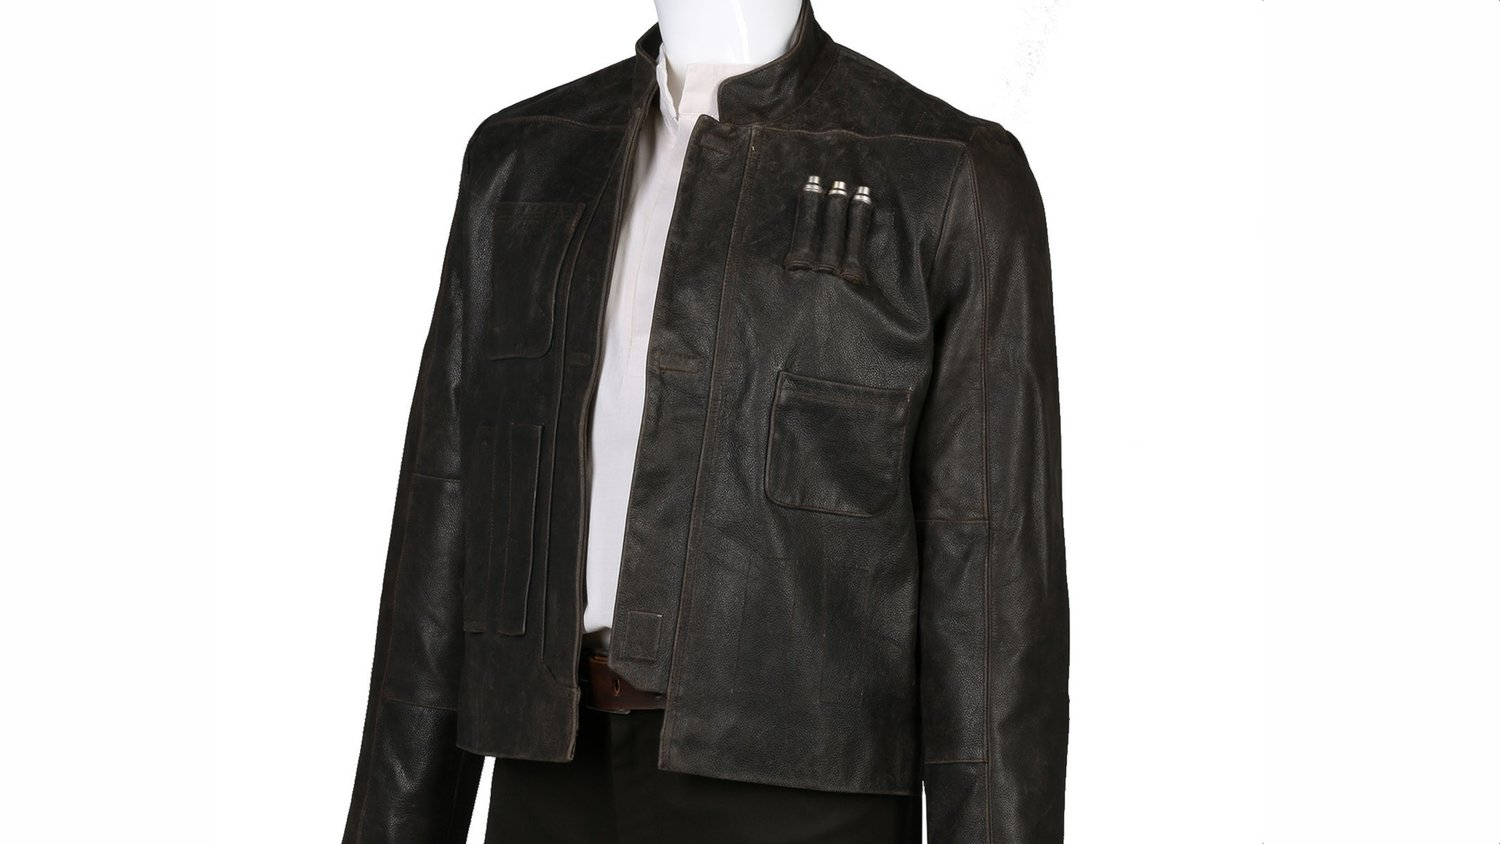 This Is the Best Han Solo Jacket That $500 Can Buy!